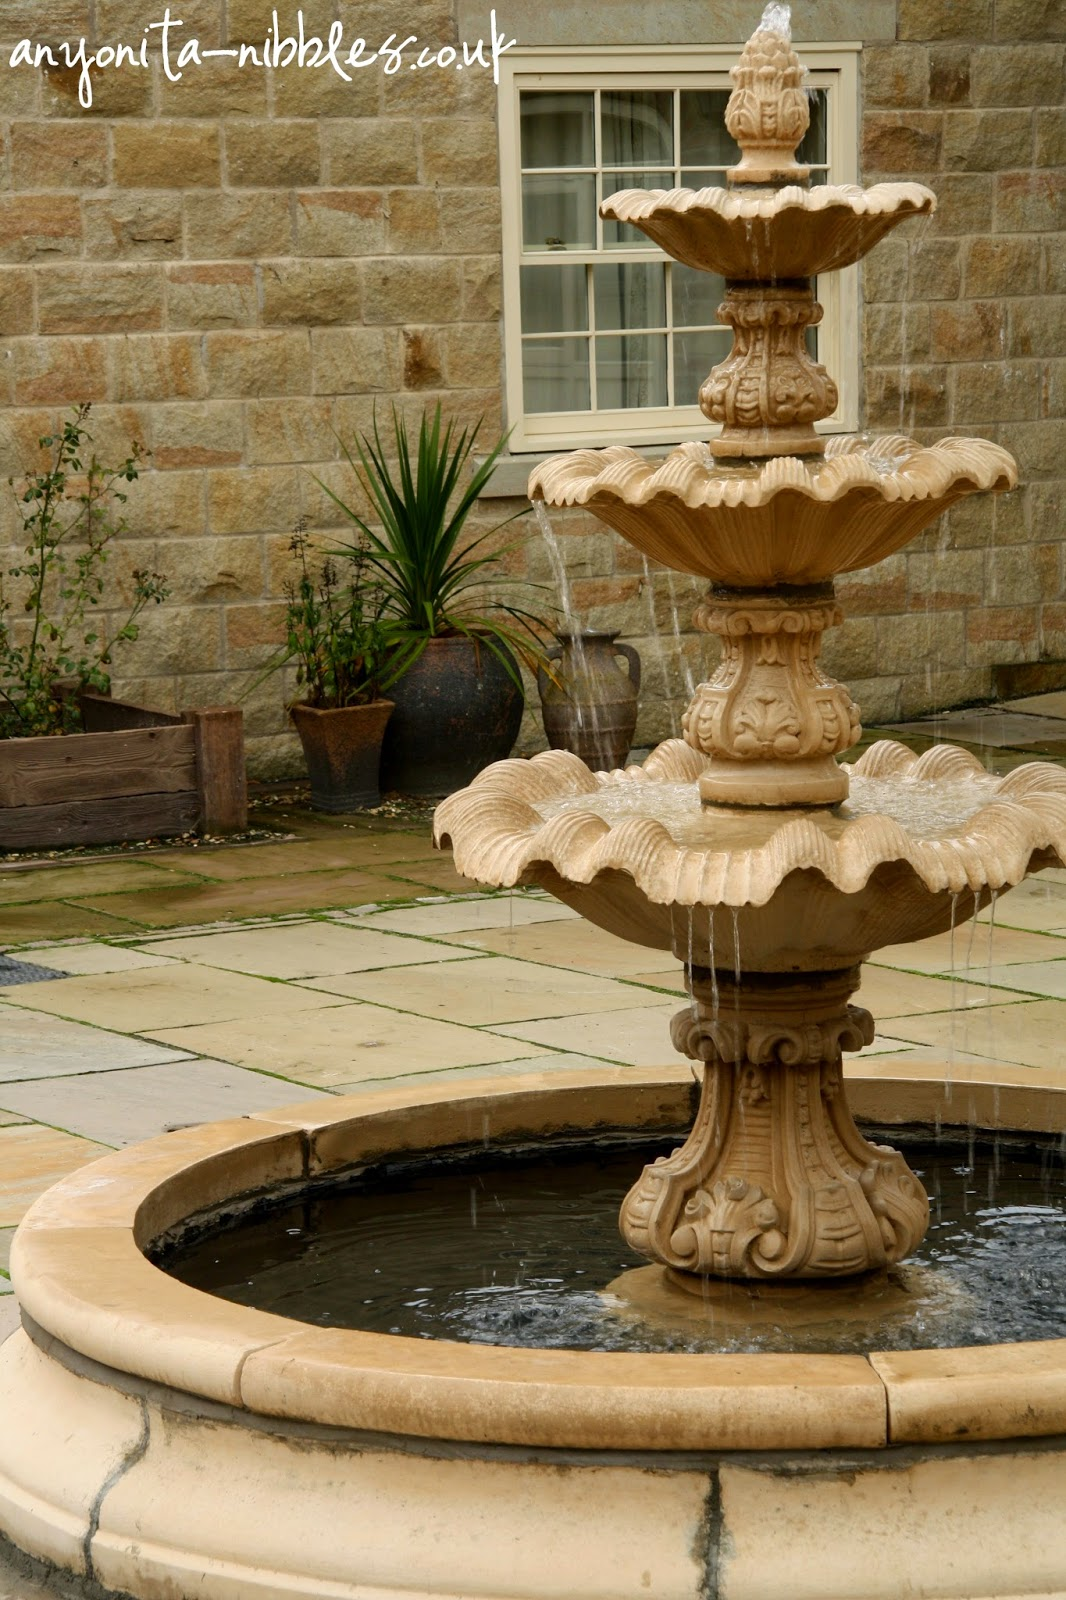 Tranquil courtyard fountain | Anyonita-nibbles.co.uk